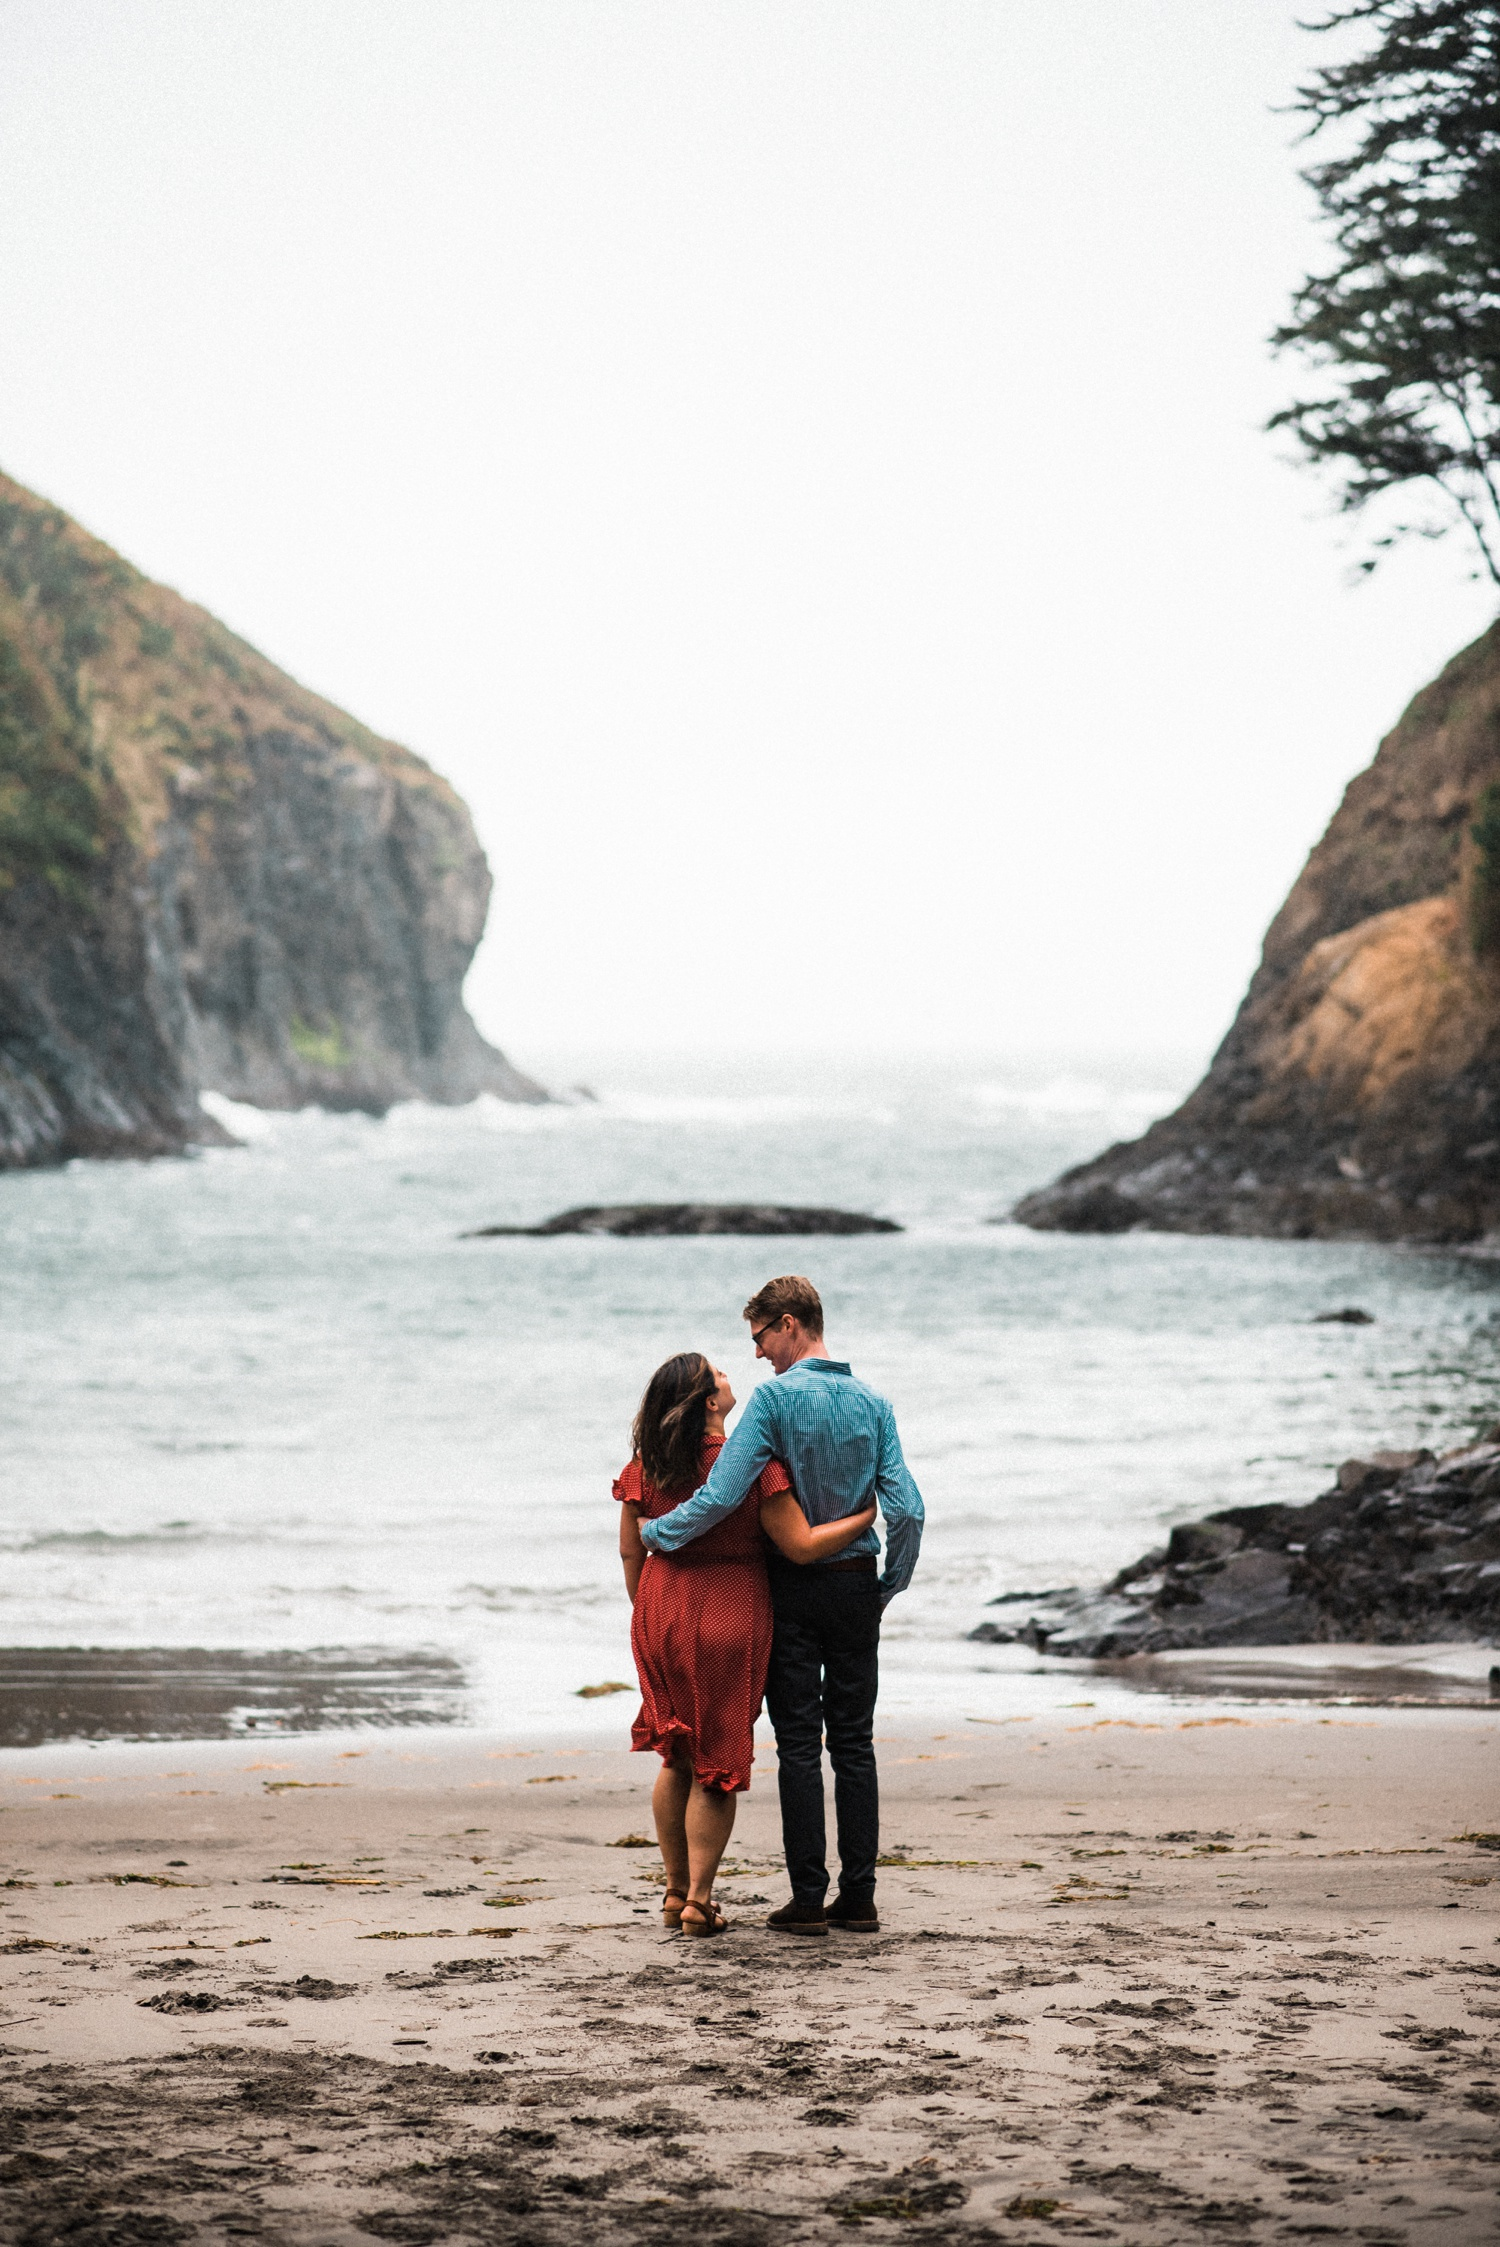 Cape_Disappointment_Engagment_Kailey_Alex_The_Foxes_Photography_040.jpg